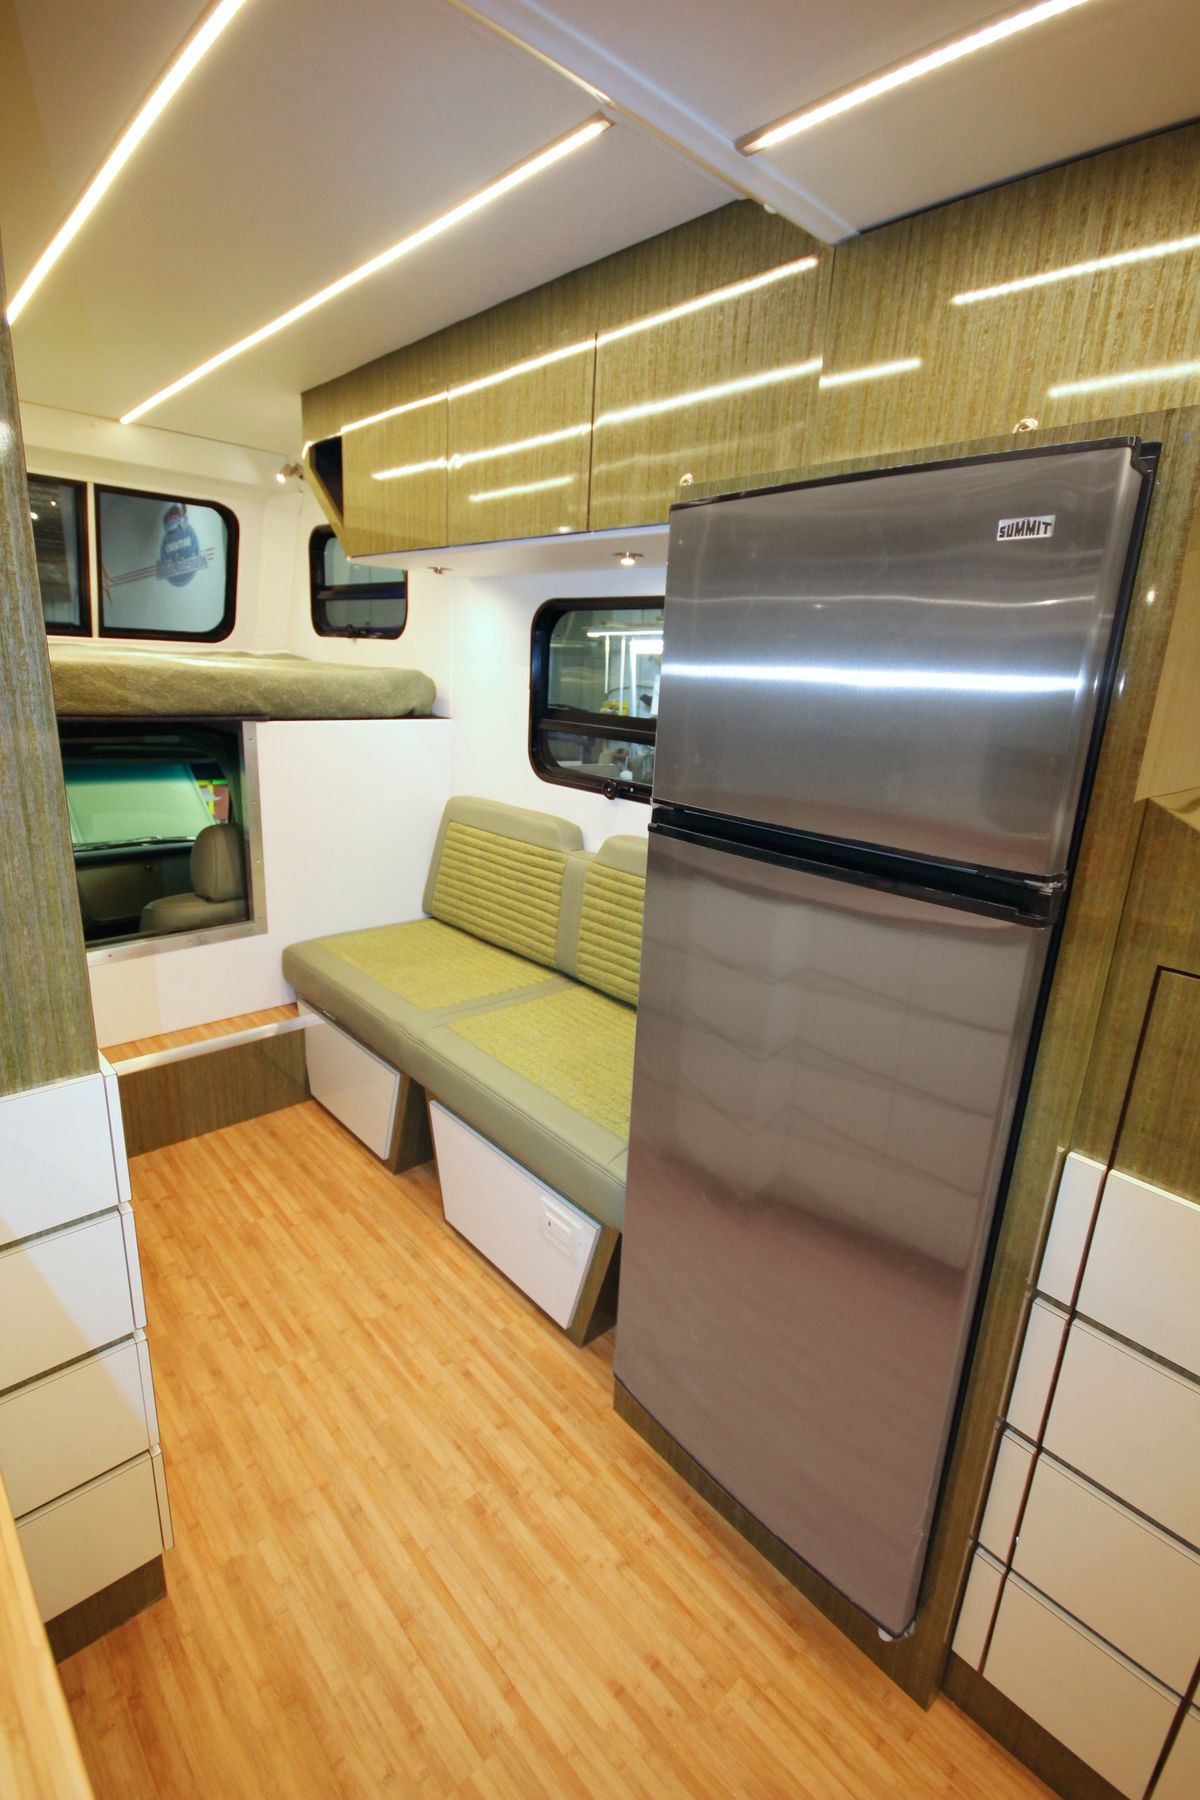 The camper has a full-size stainless steel fridge, wood floors, a green bench seat, and white cabinets.